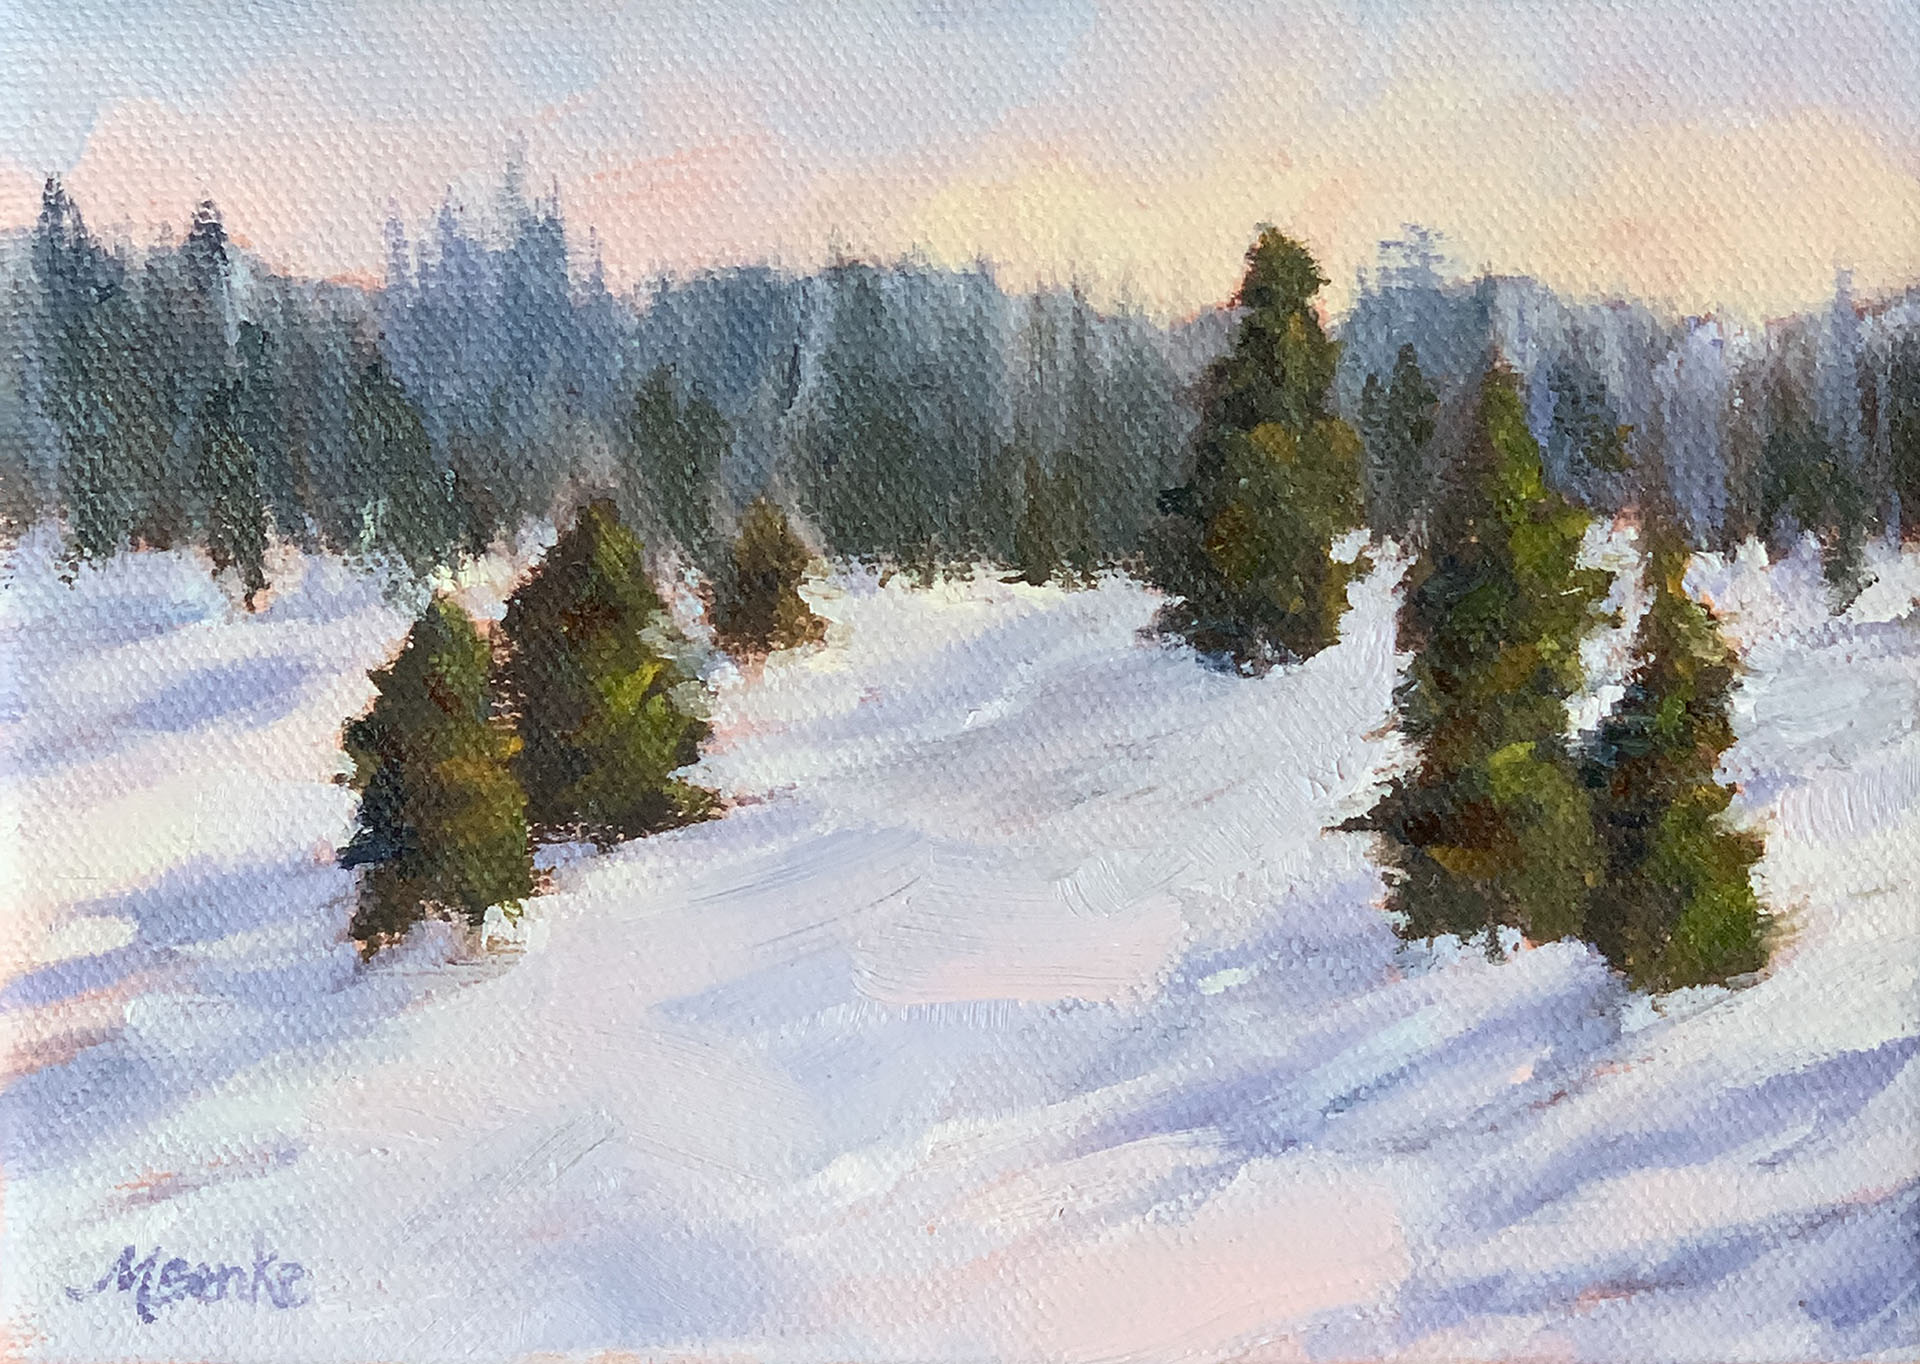 A warm glow lights the sky in this peaceful snow scene featuring pines and their dramatic shadows by Mary Benke